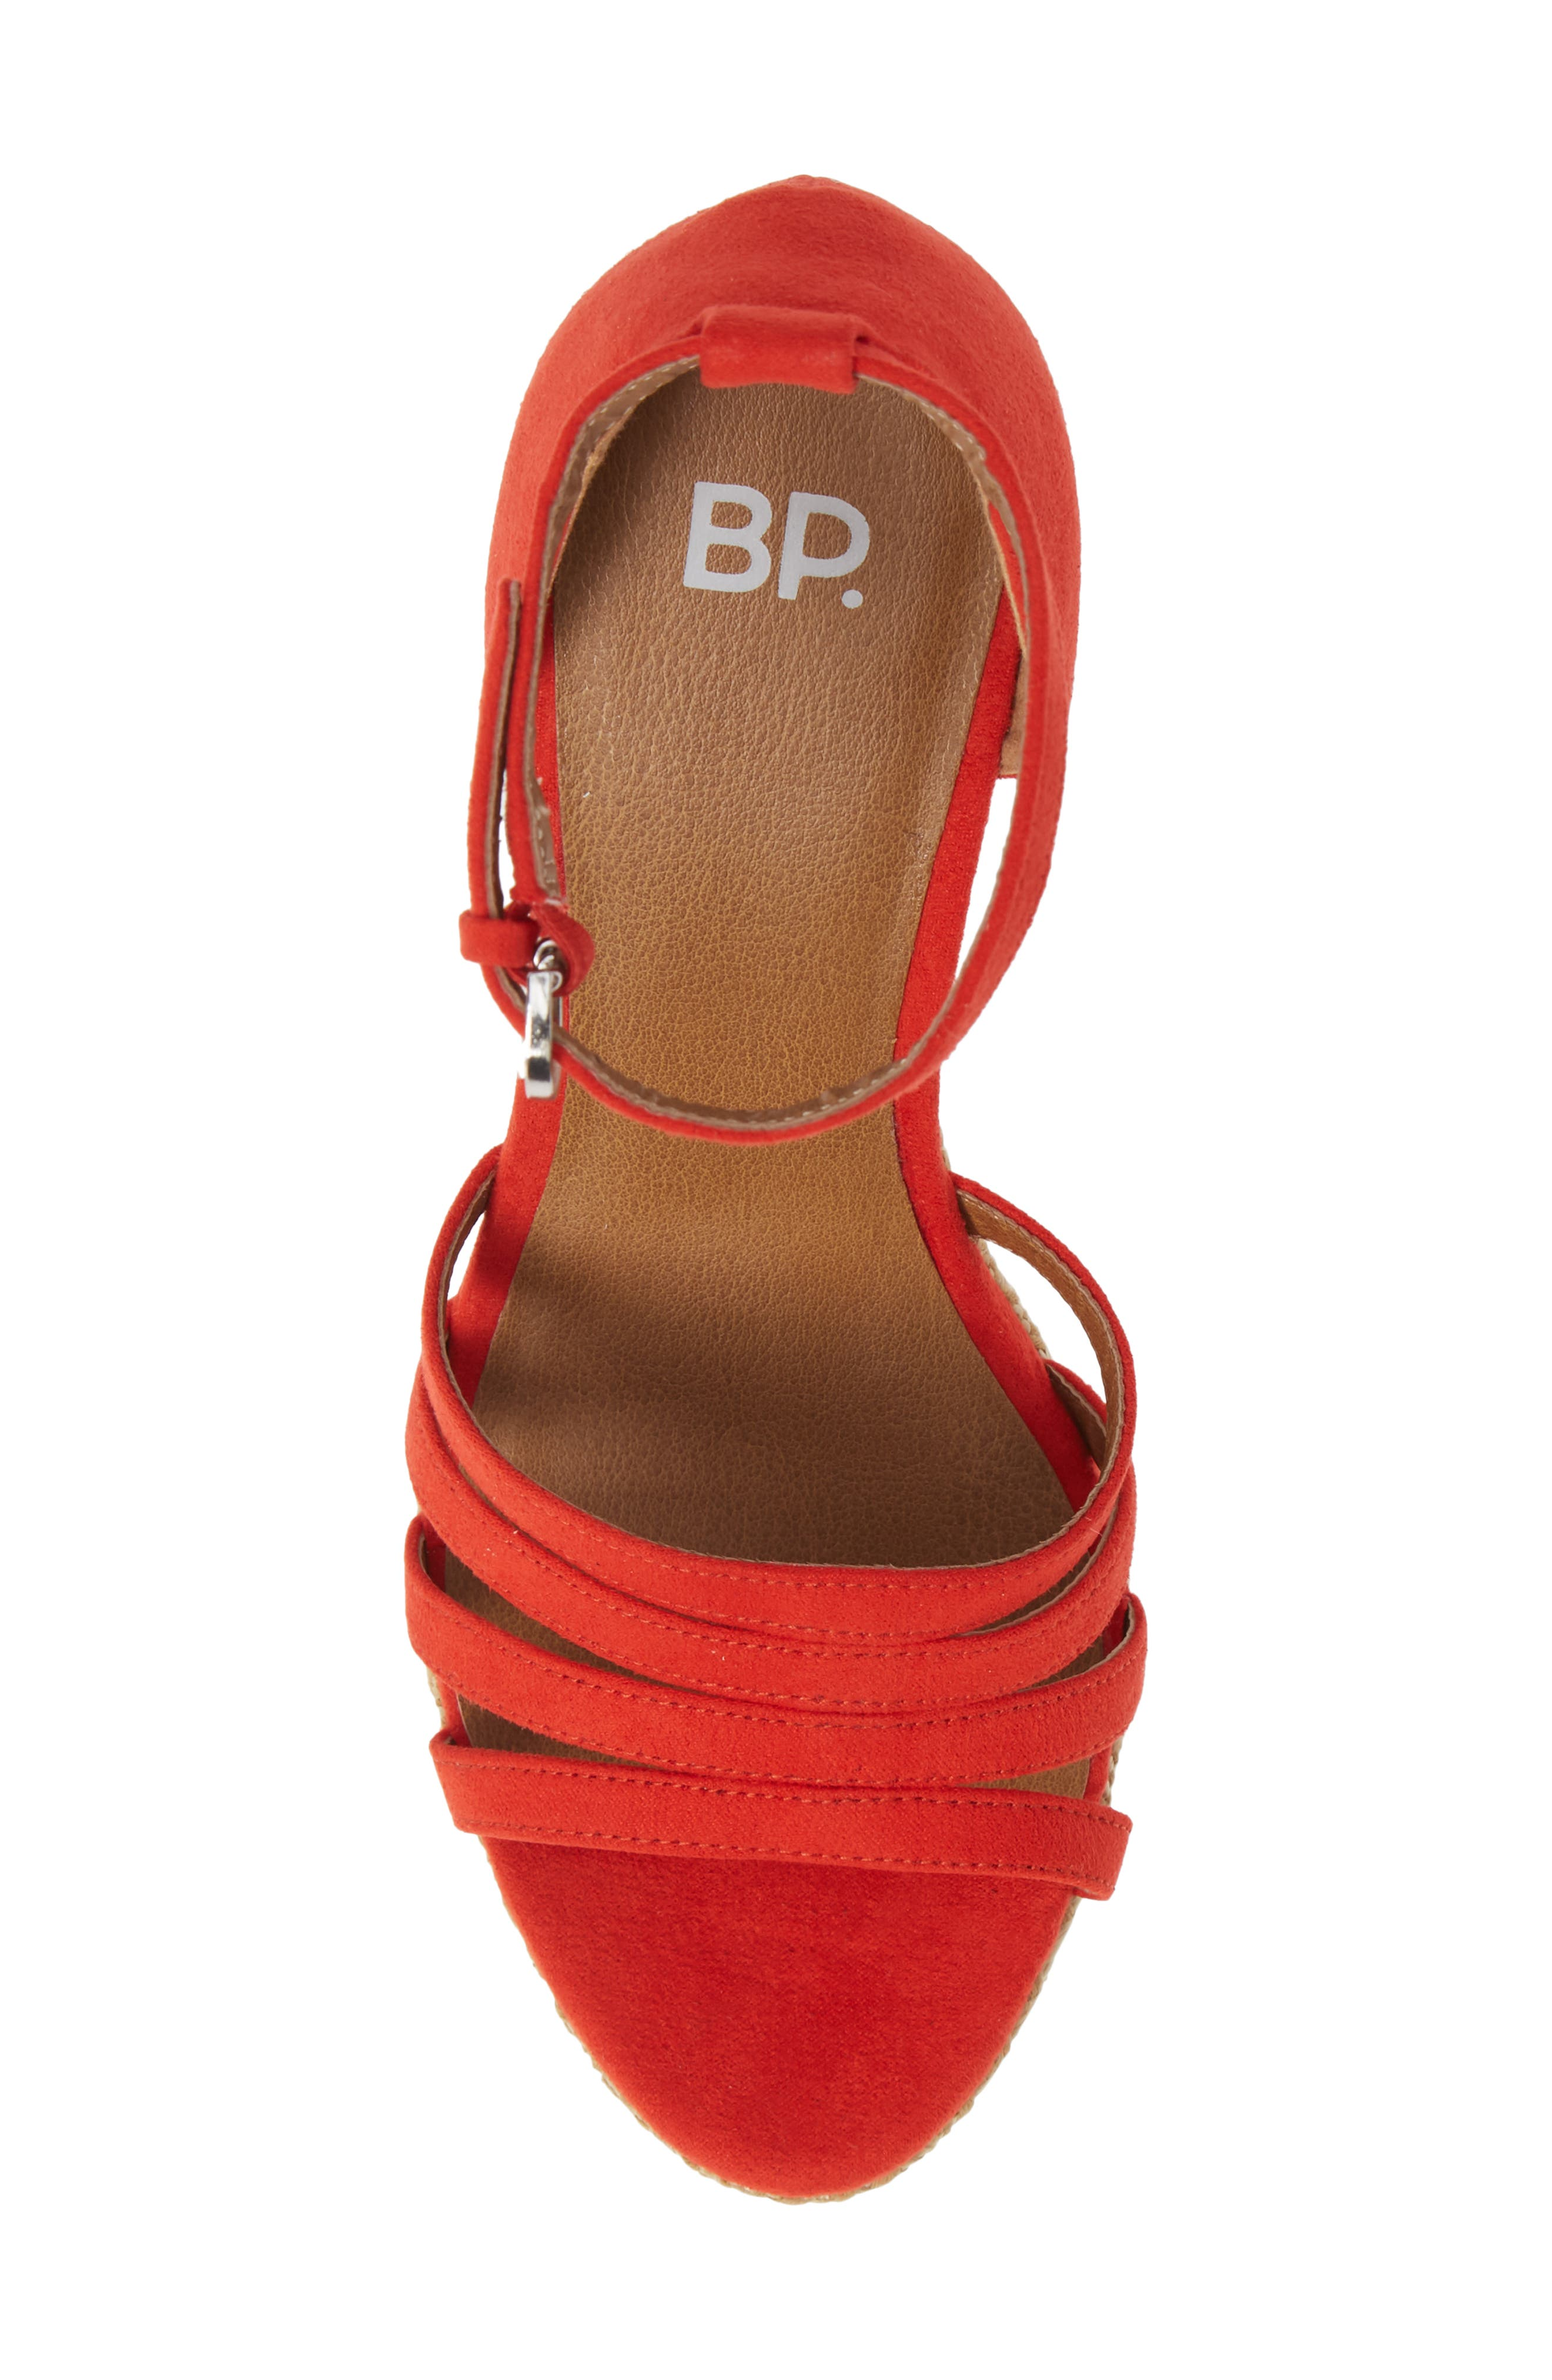 Scarlette Wedge Sandal,                             Alternate thumbnail 5, color,                             RED FAUX SUEDE